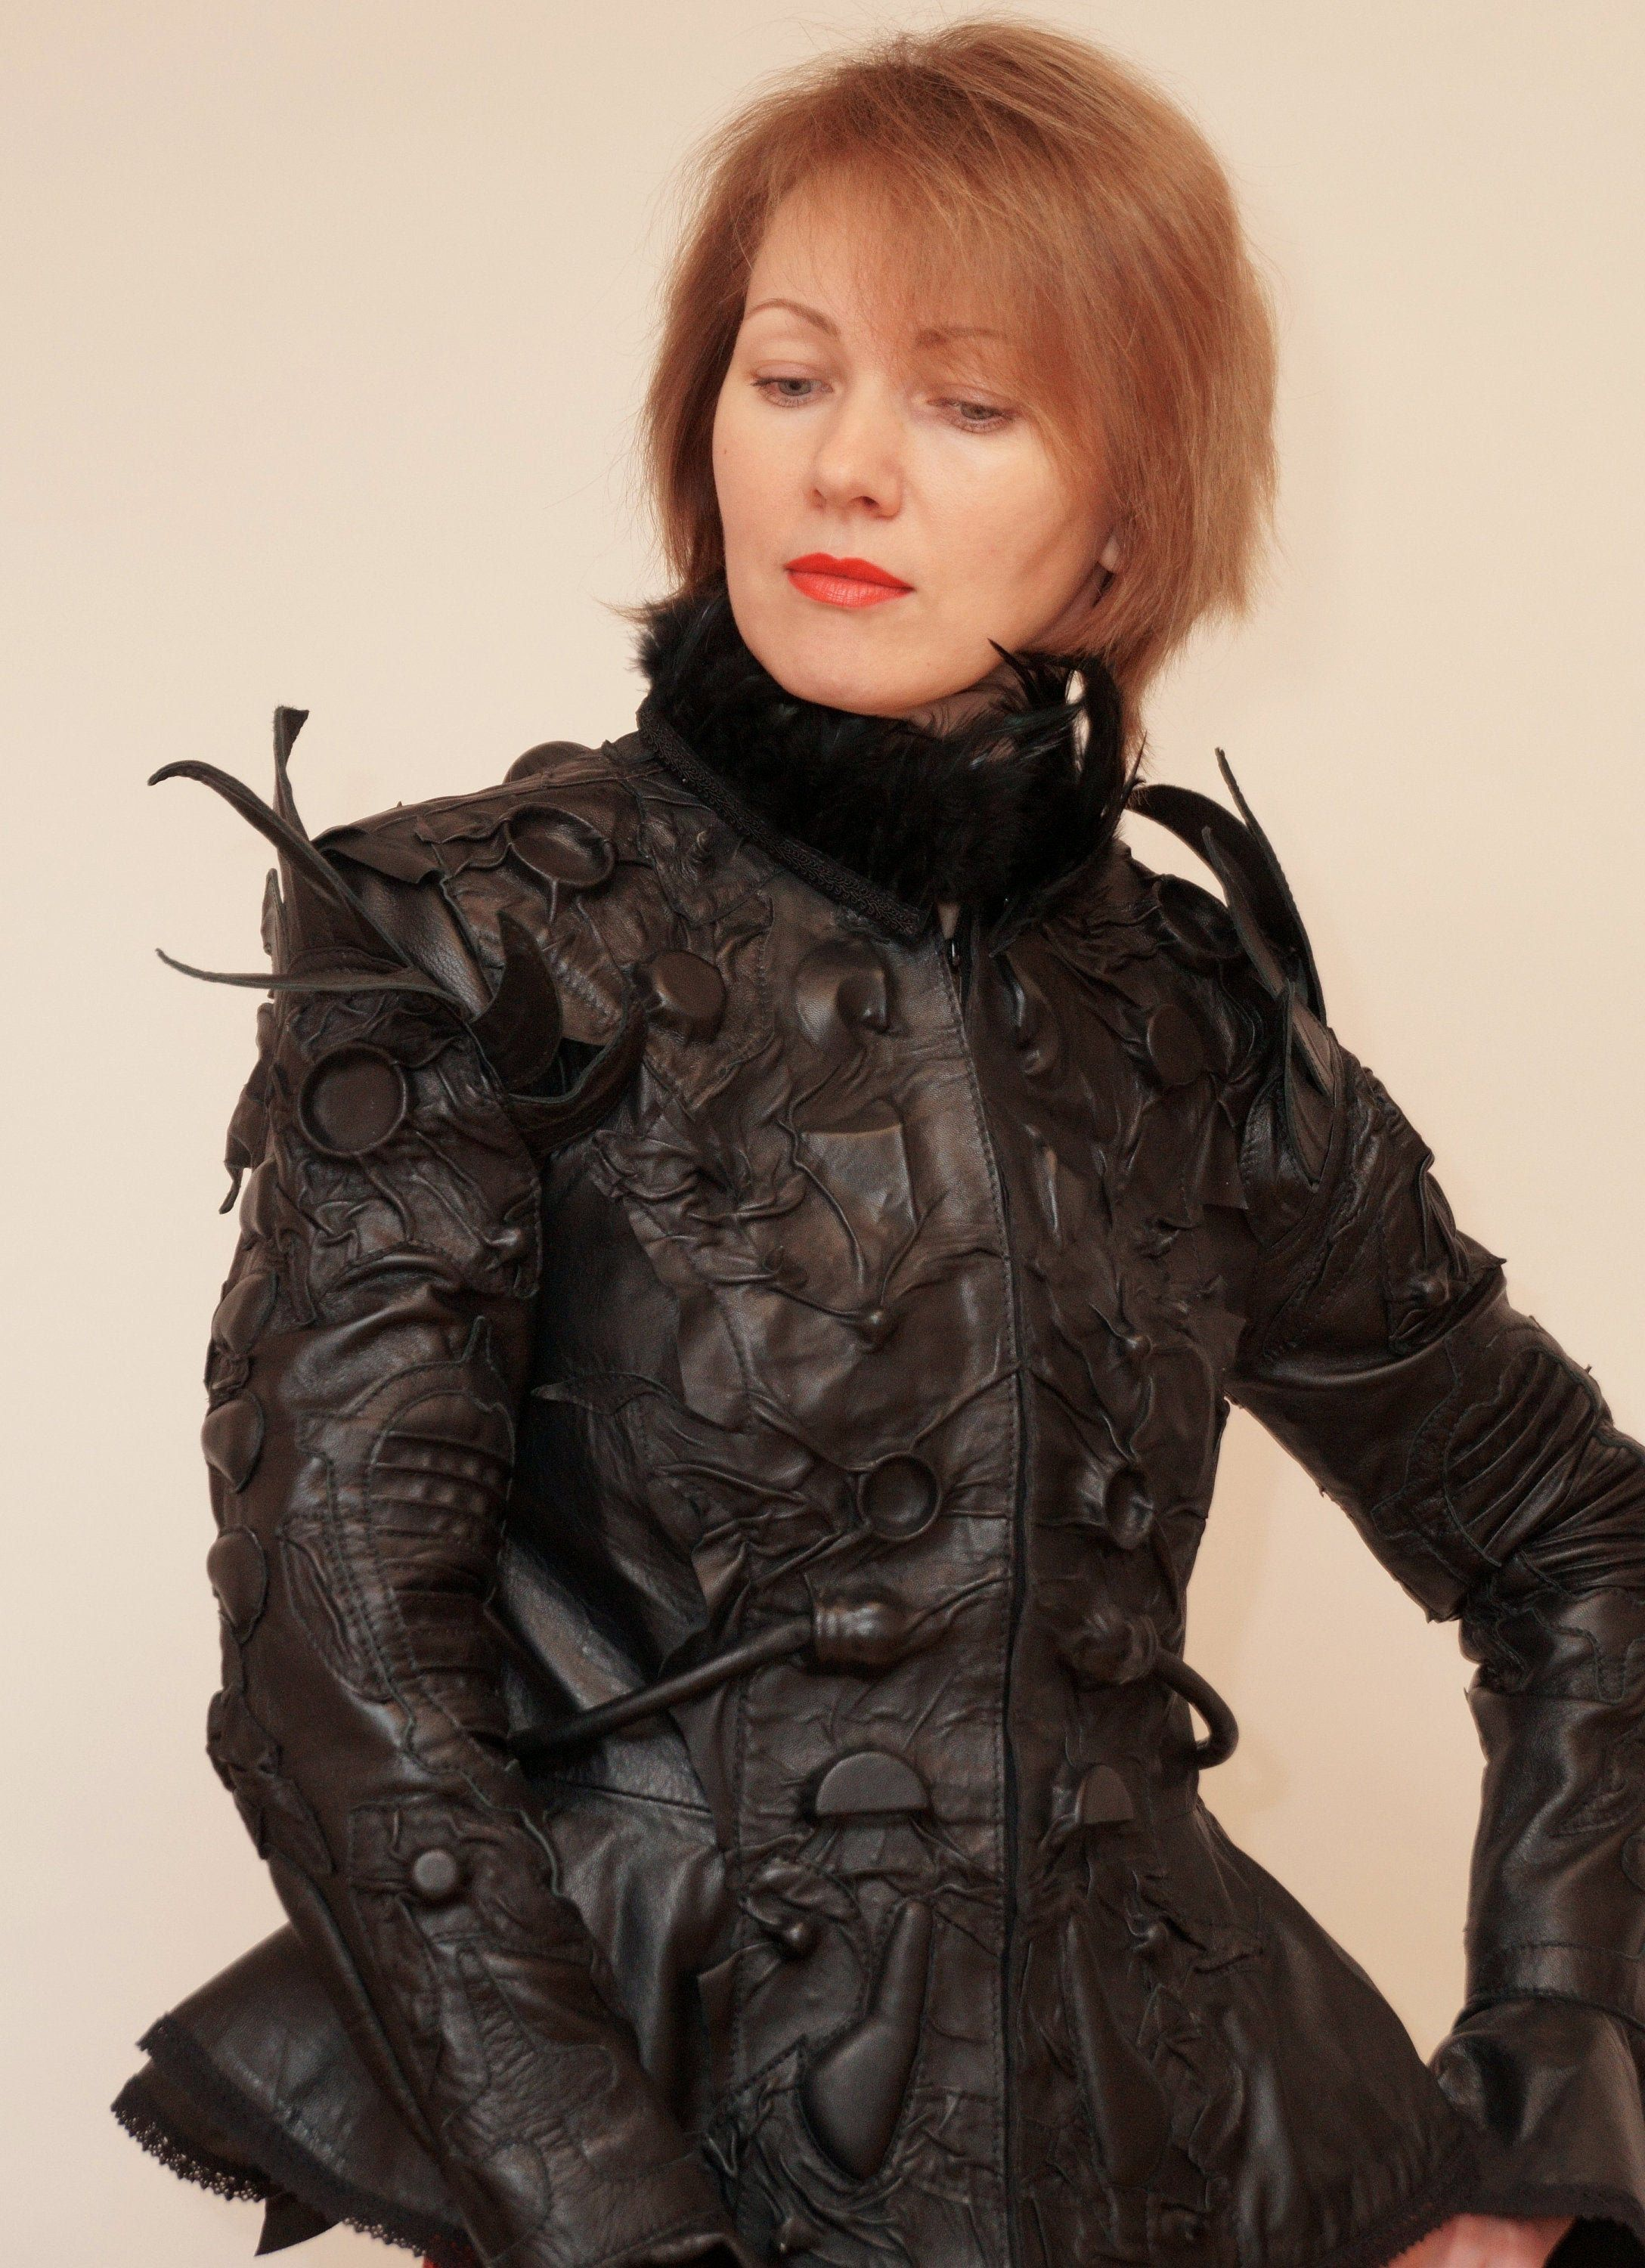 Unique women's Jacket black genuine leather with lace bell